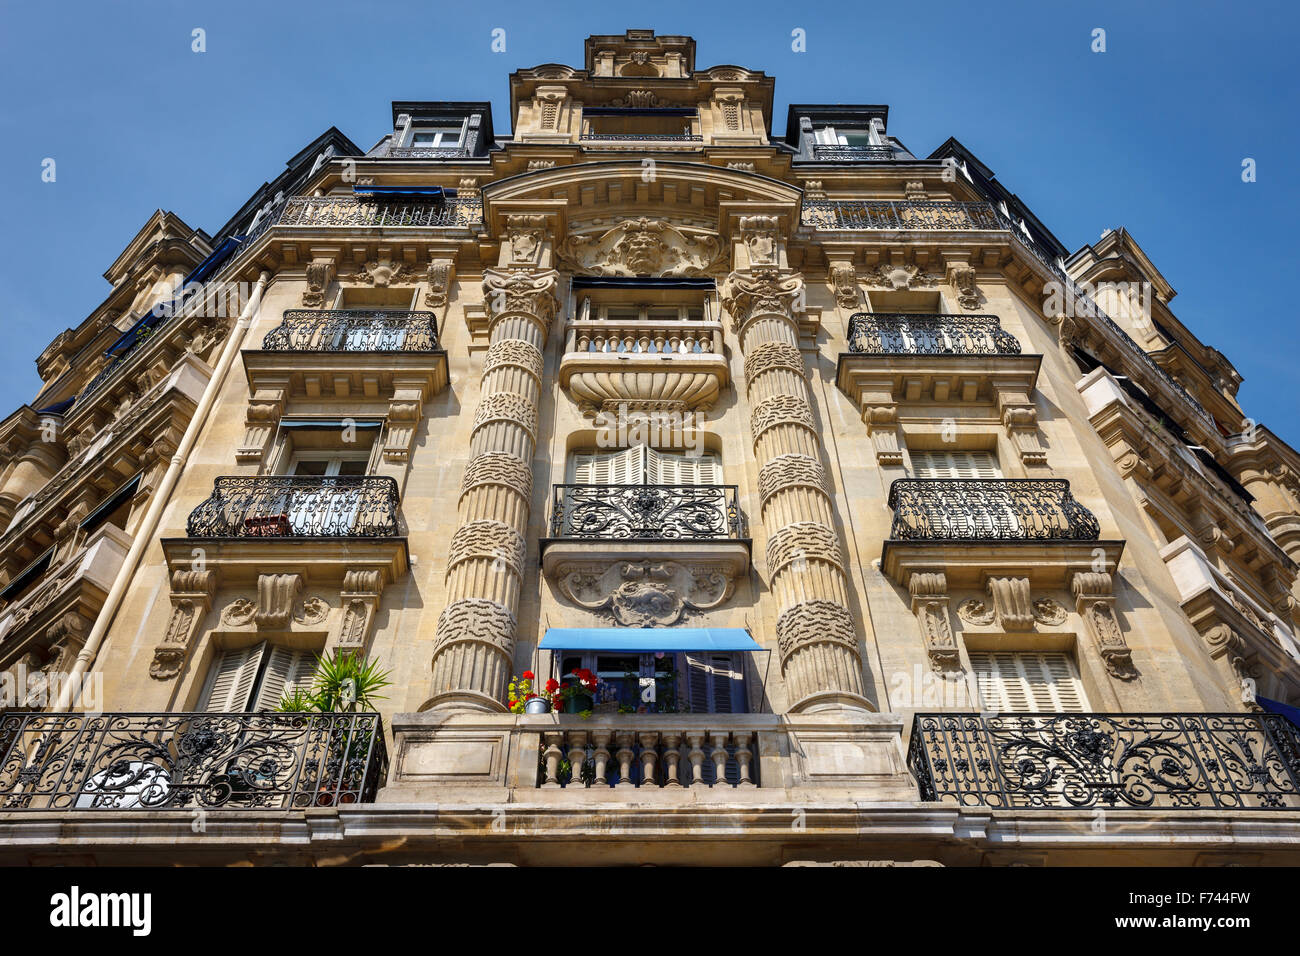 Paris architecture: haussmannian facade and ornaments in the 12th arrondissement, right bank - Stock Image